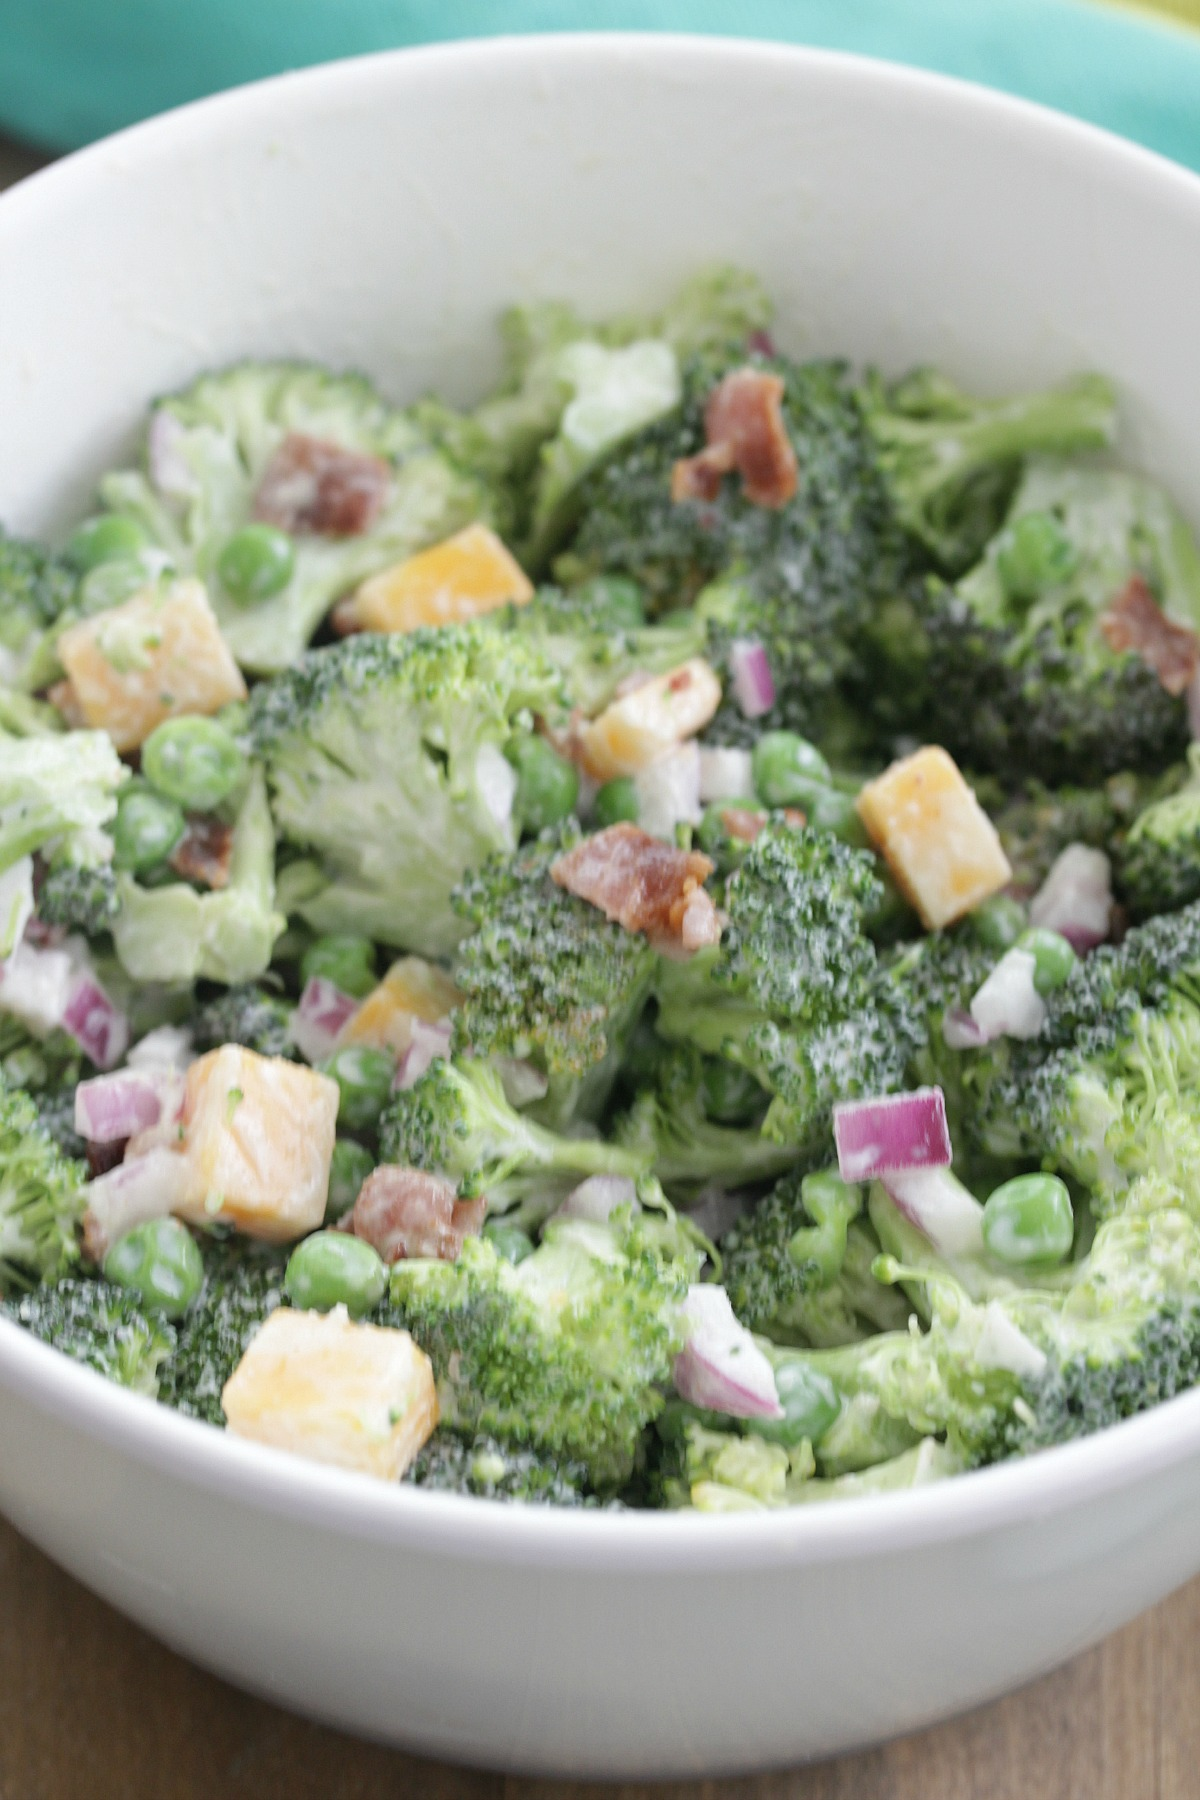 Overhead shot of bowl of broccoli salad with onion, bacon, peas, and cheese